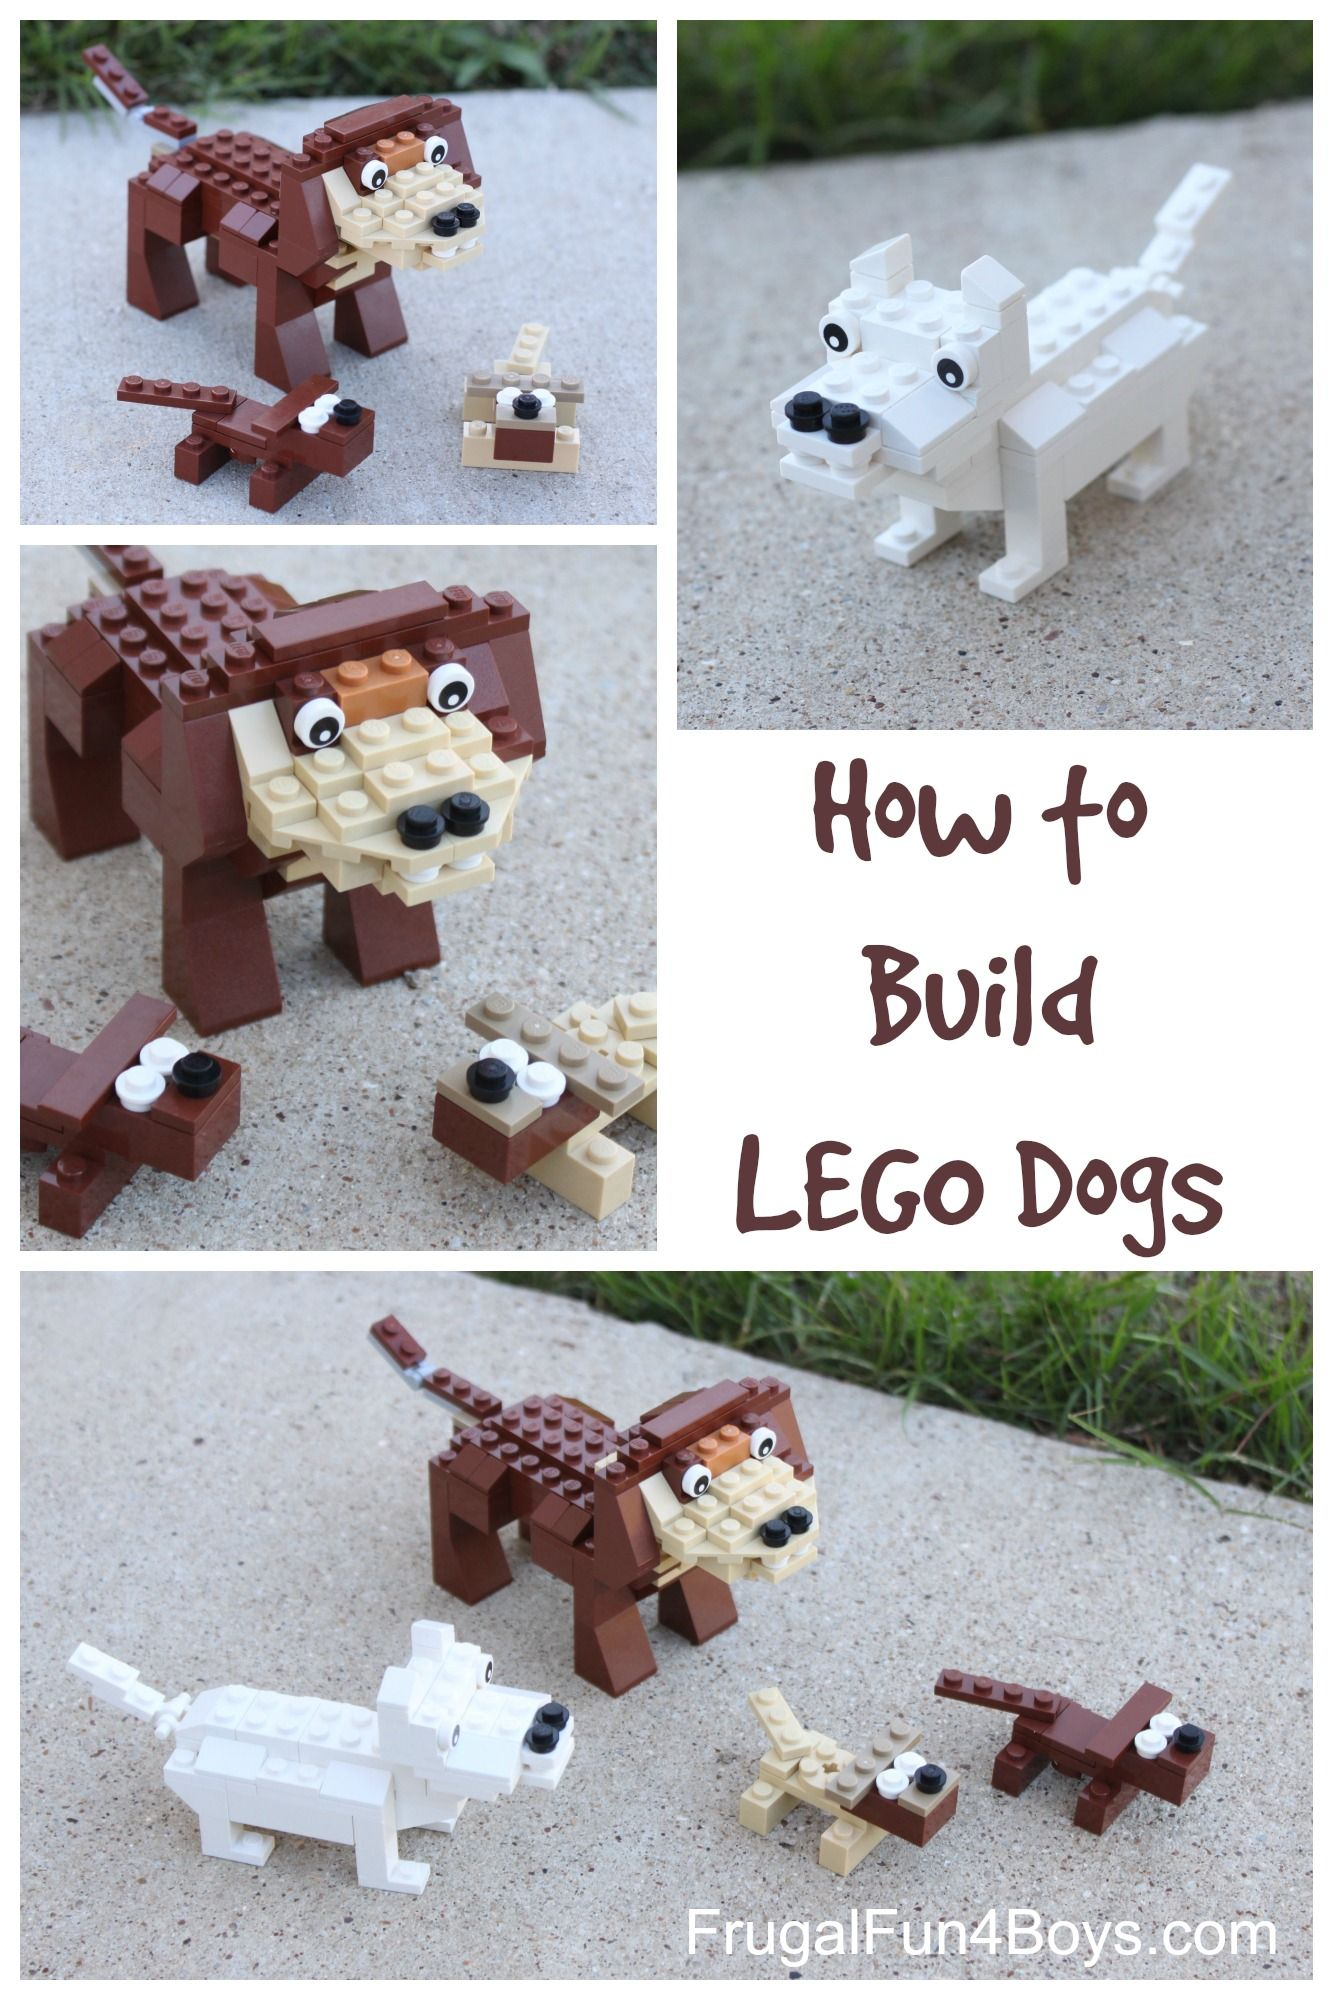 Lego Dog Building Instructions Frugal Fun For Boys And Girls